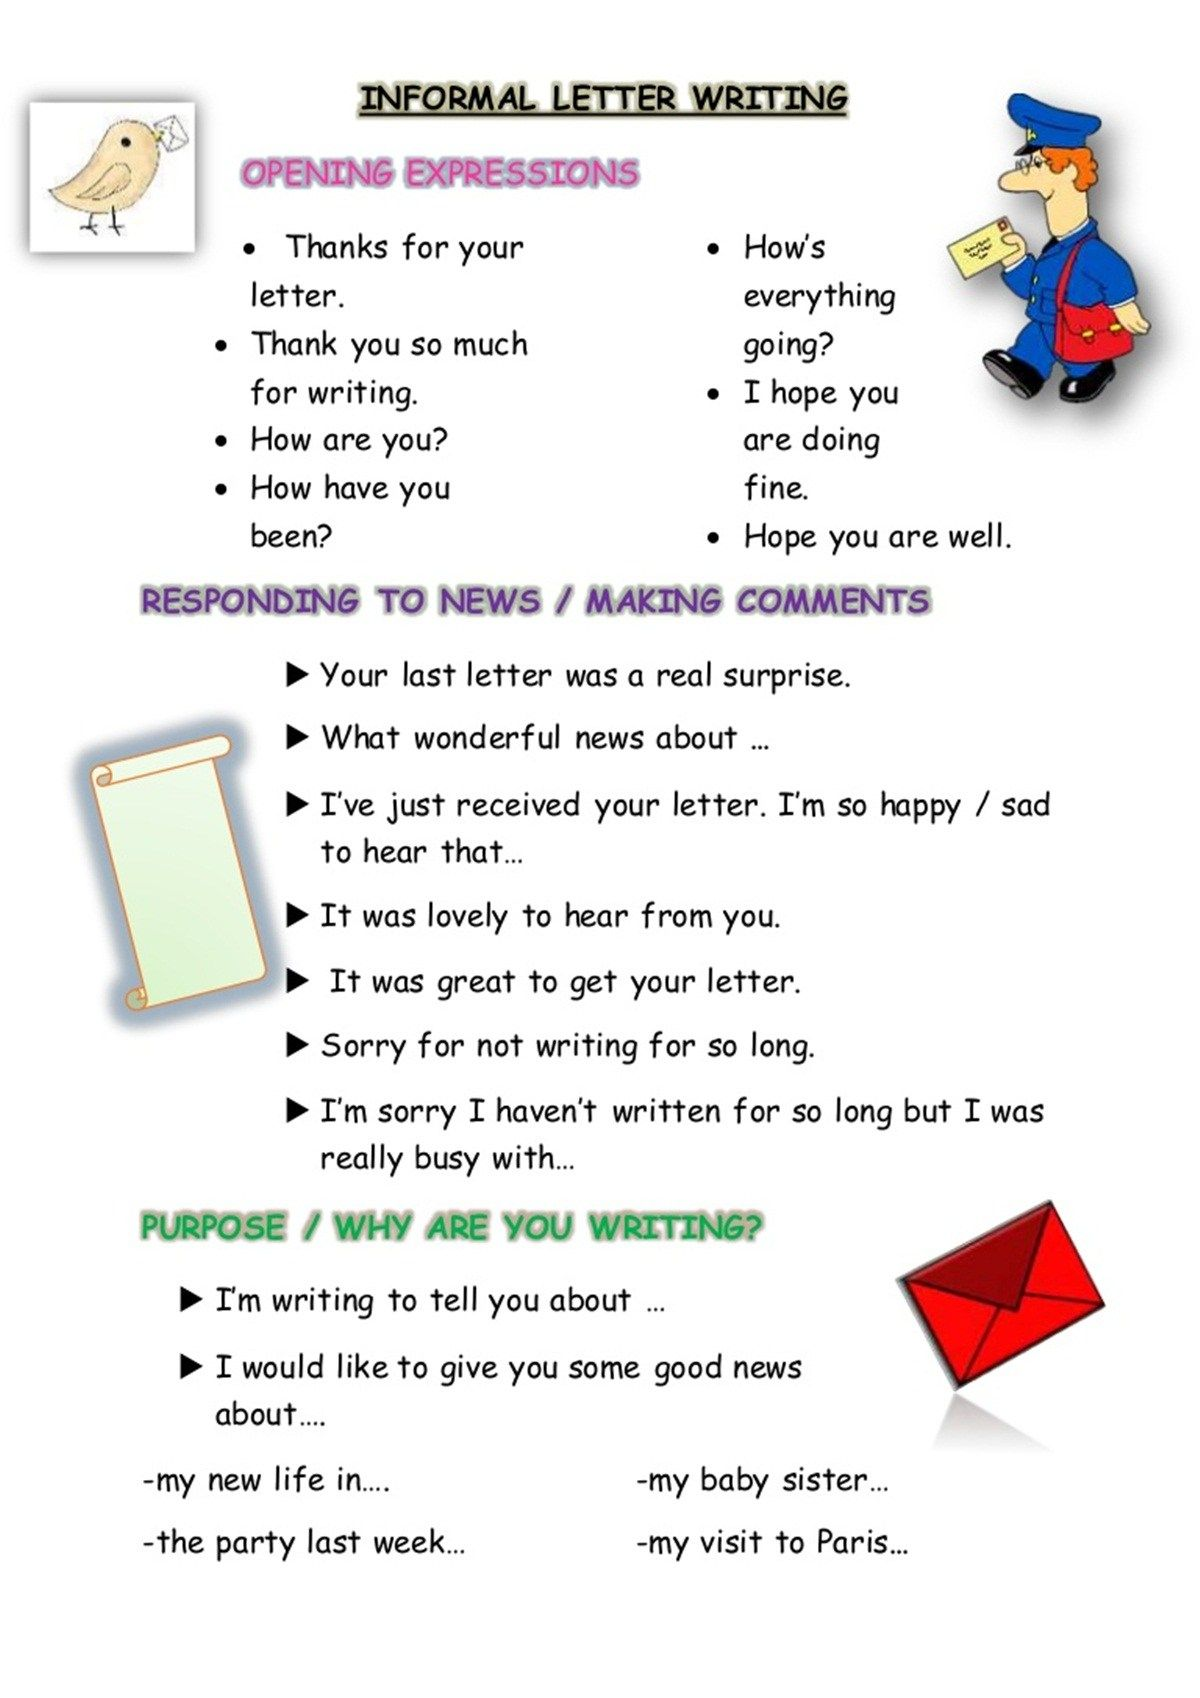 How to Write Informal Letters in English (with Examples